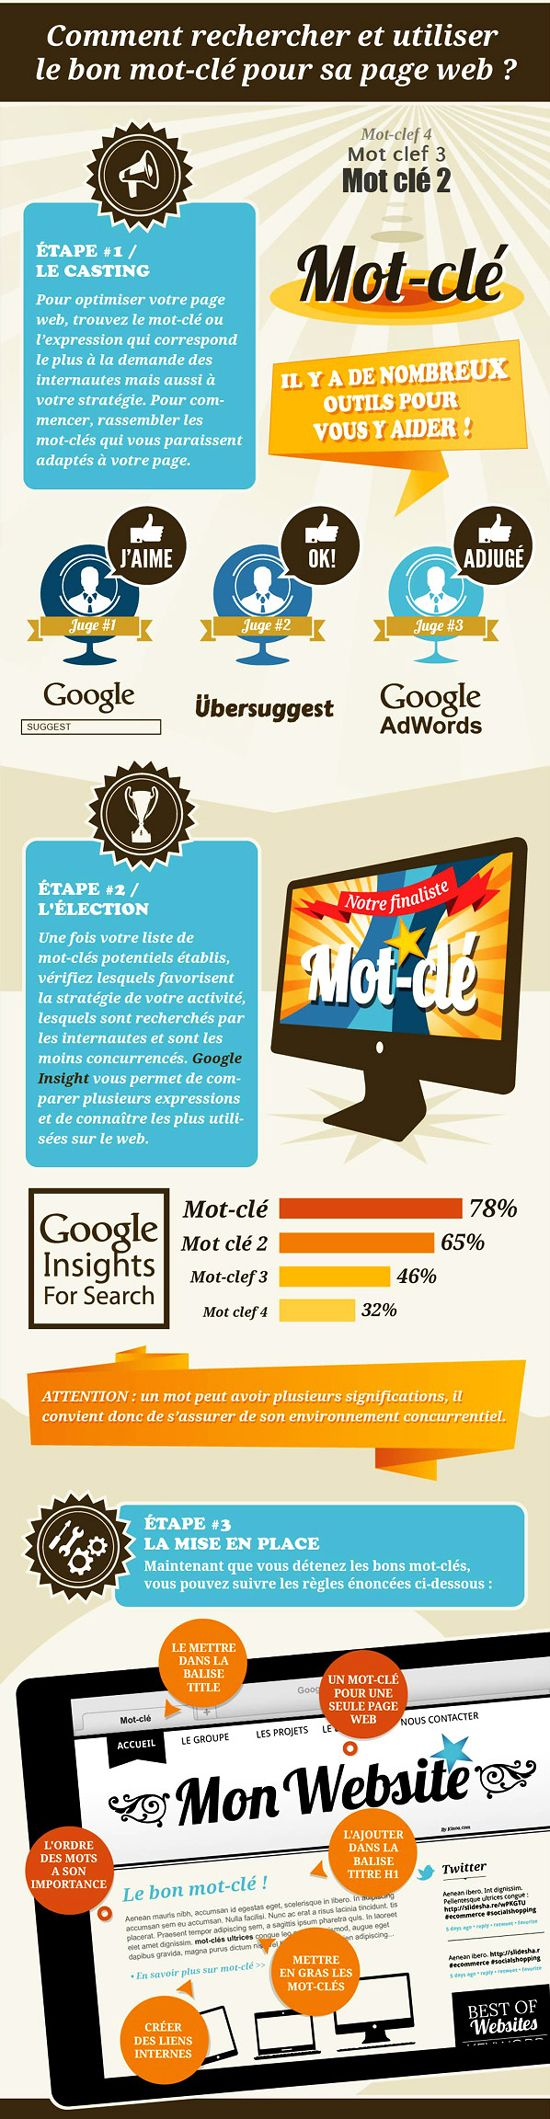 infographie #SEO mots clefs optimiser #marketing #digitalmarketing